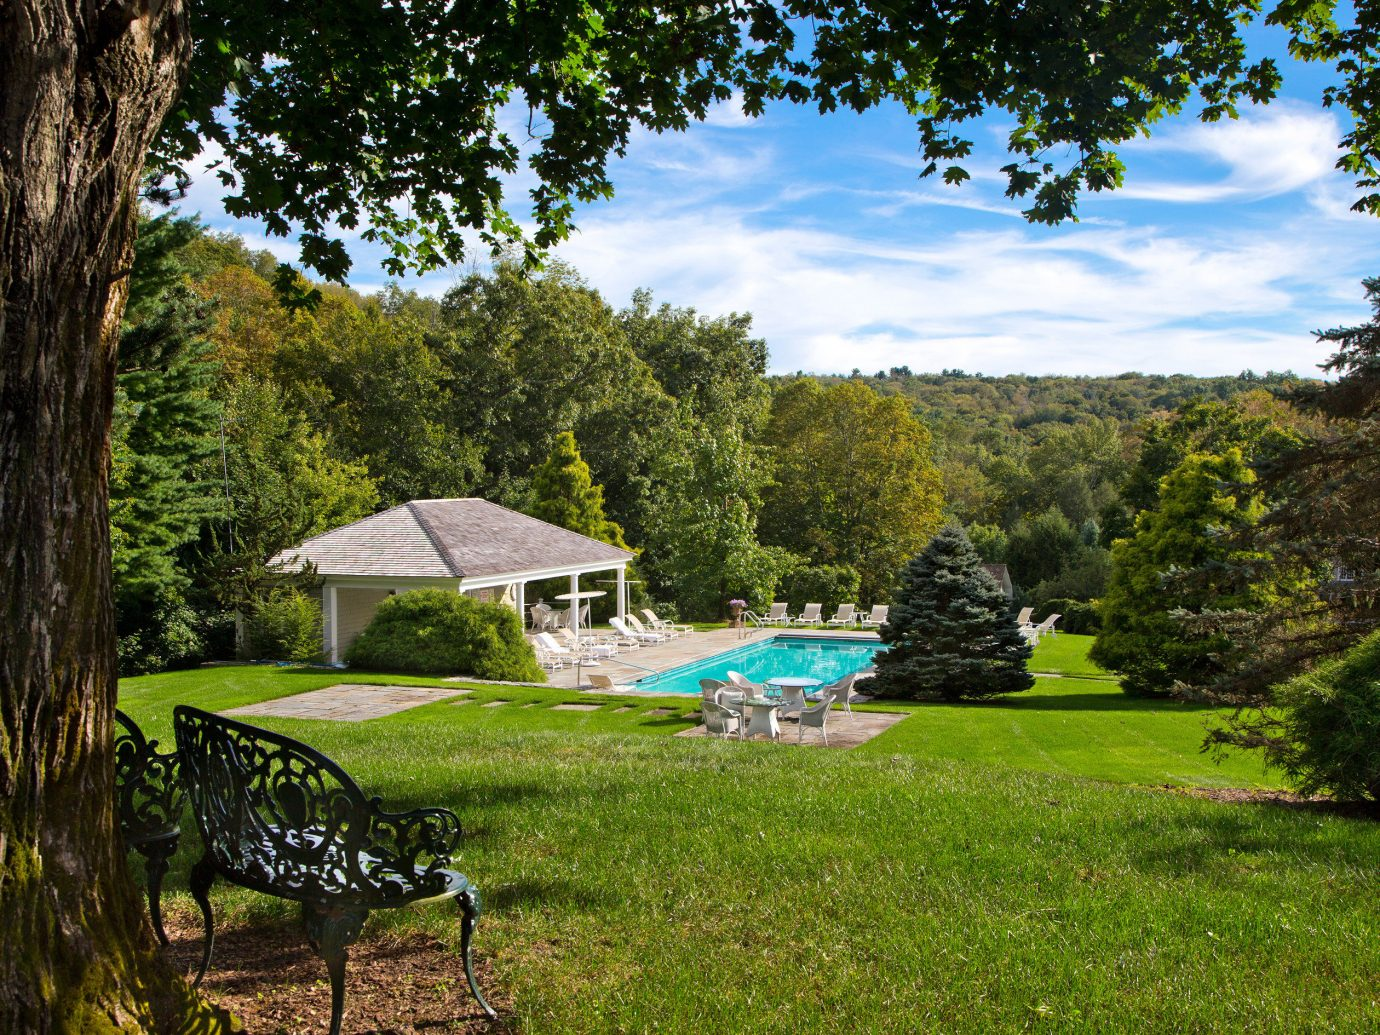 Country Pool Romance Scenic views Trip Ideas Weekend Getaways tree grass outdoor park Nature green woodland estate backyard Garden grassy outdoor recreation meadow Forest rural area lawn camping yard seat area lush shade